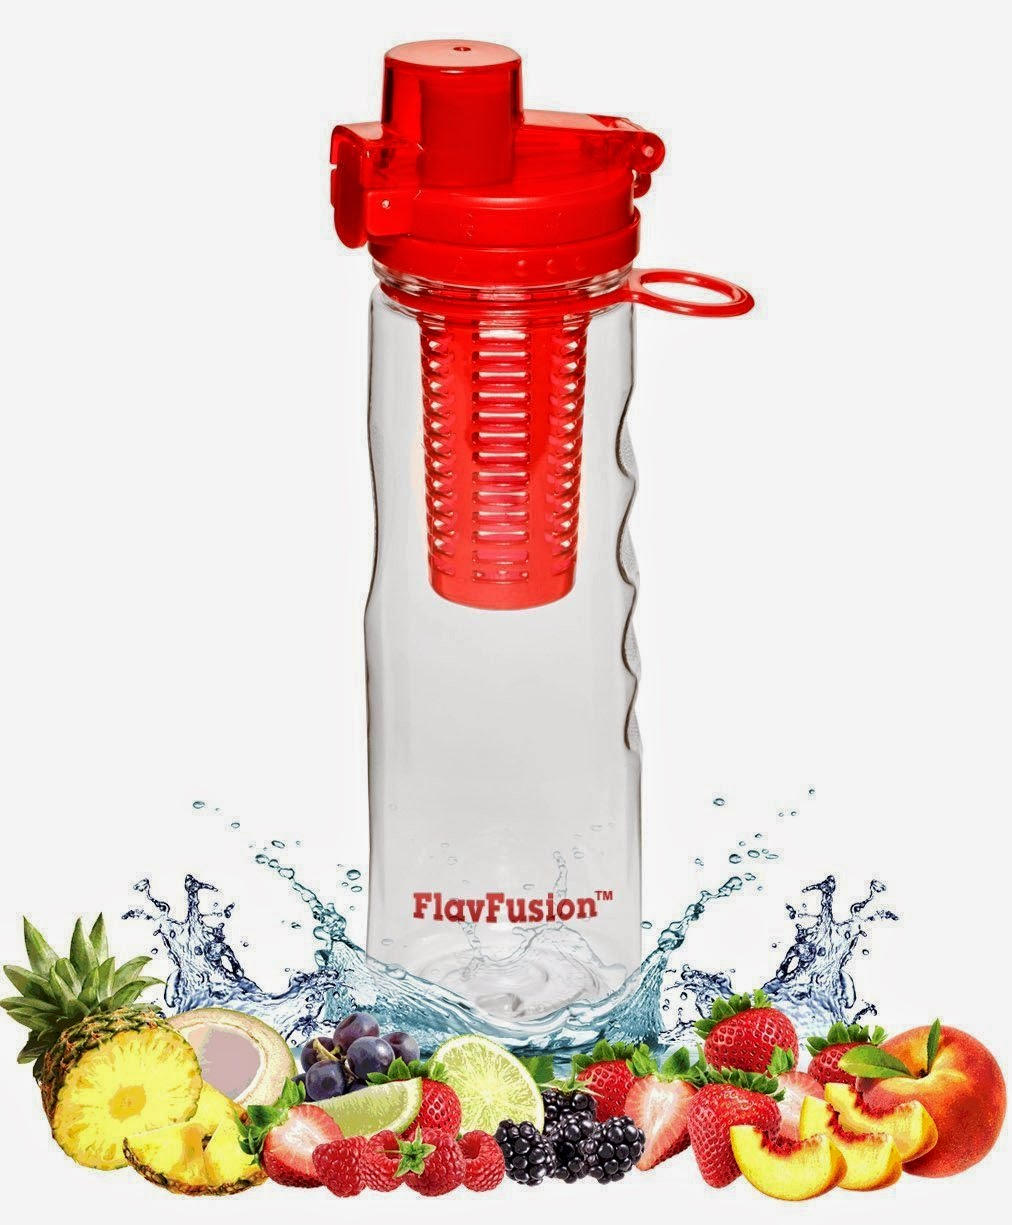 FlavFusion (TM) 25 oz Infuser Water Bottle